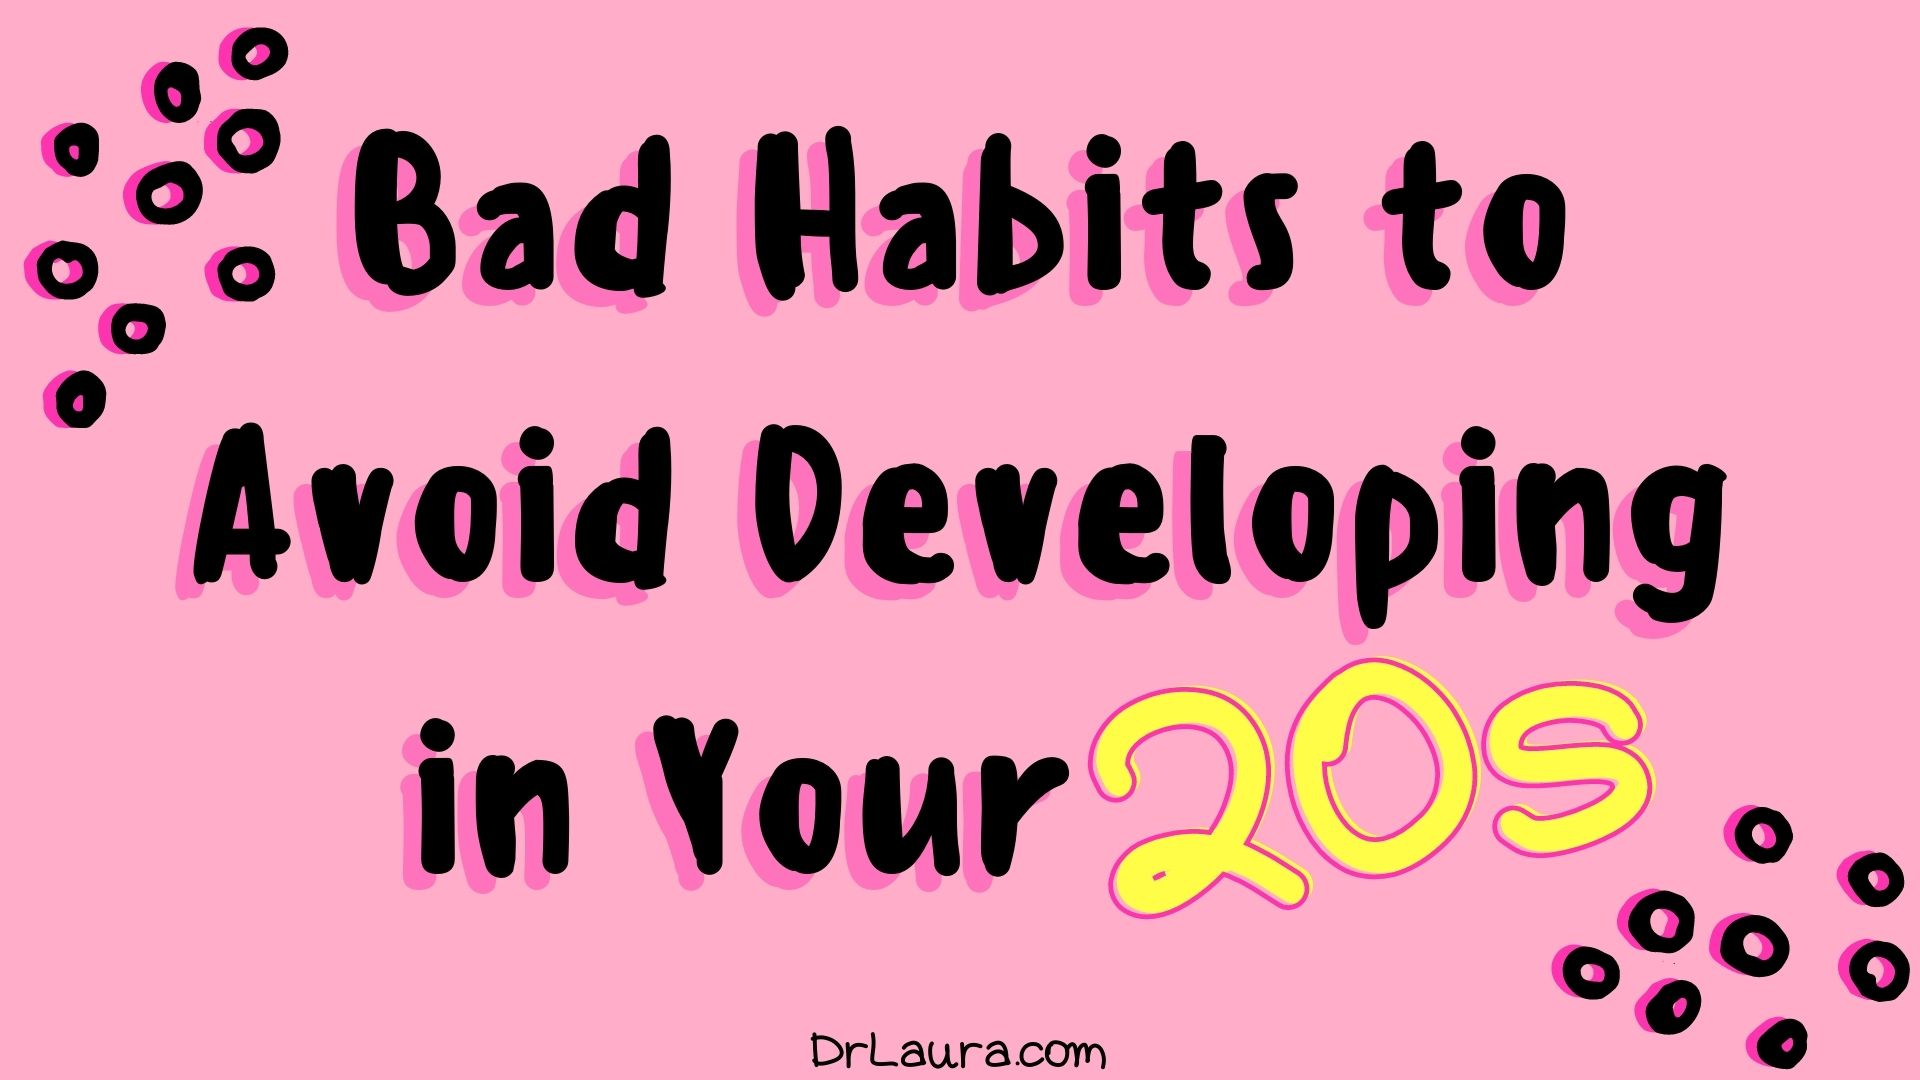 Blog: Bad Habits to Avoid Developing in Your 20s